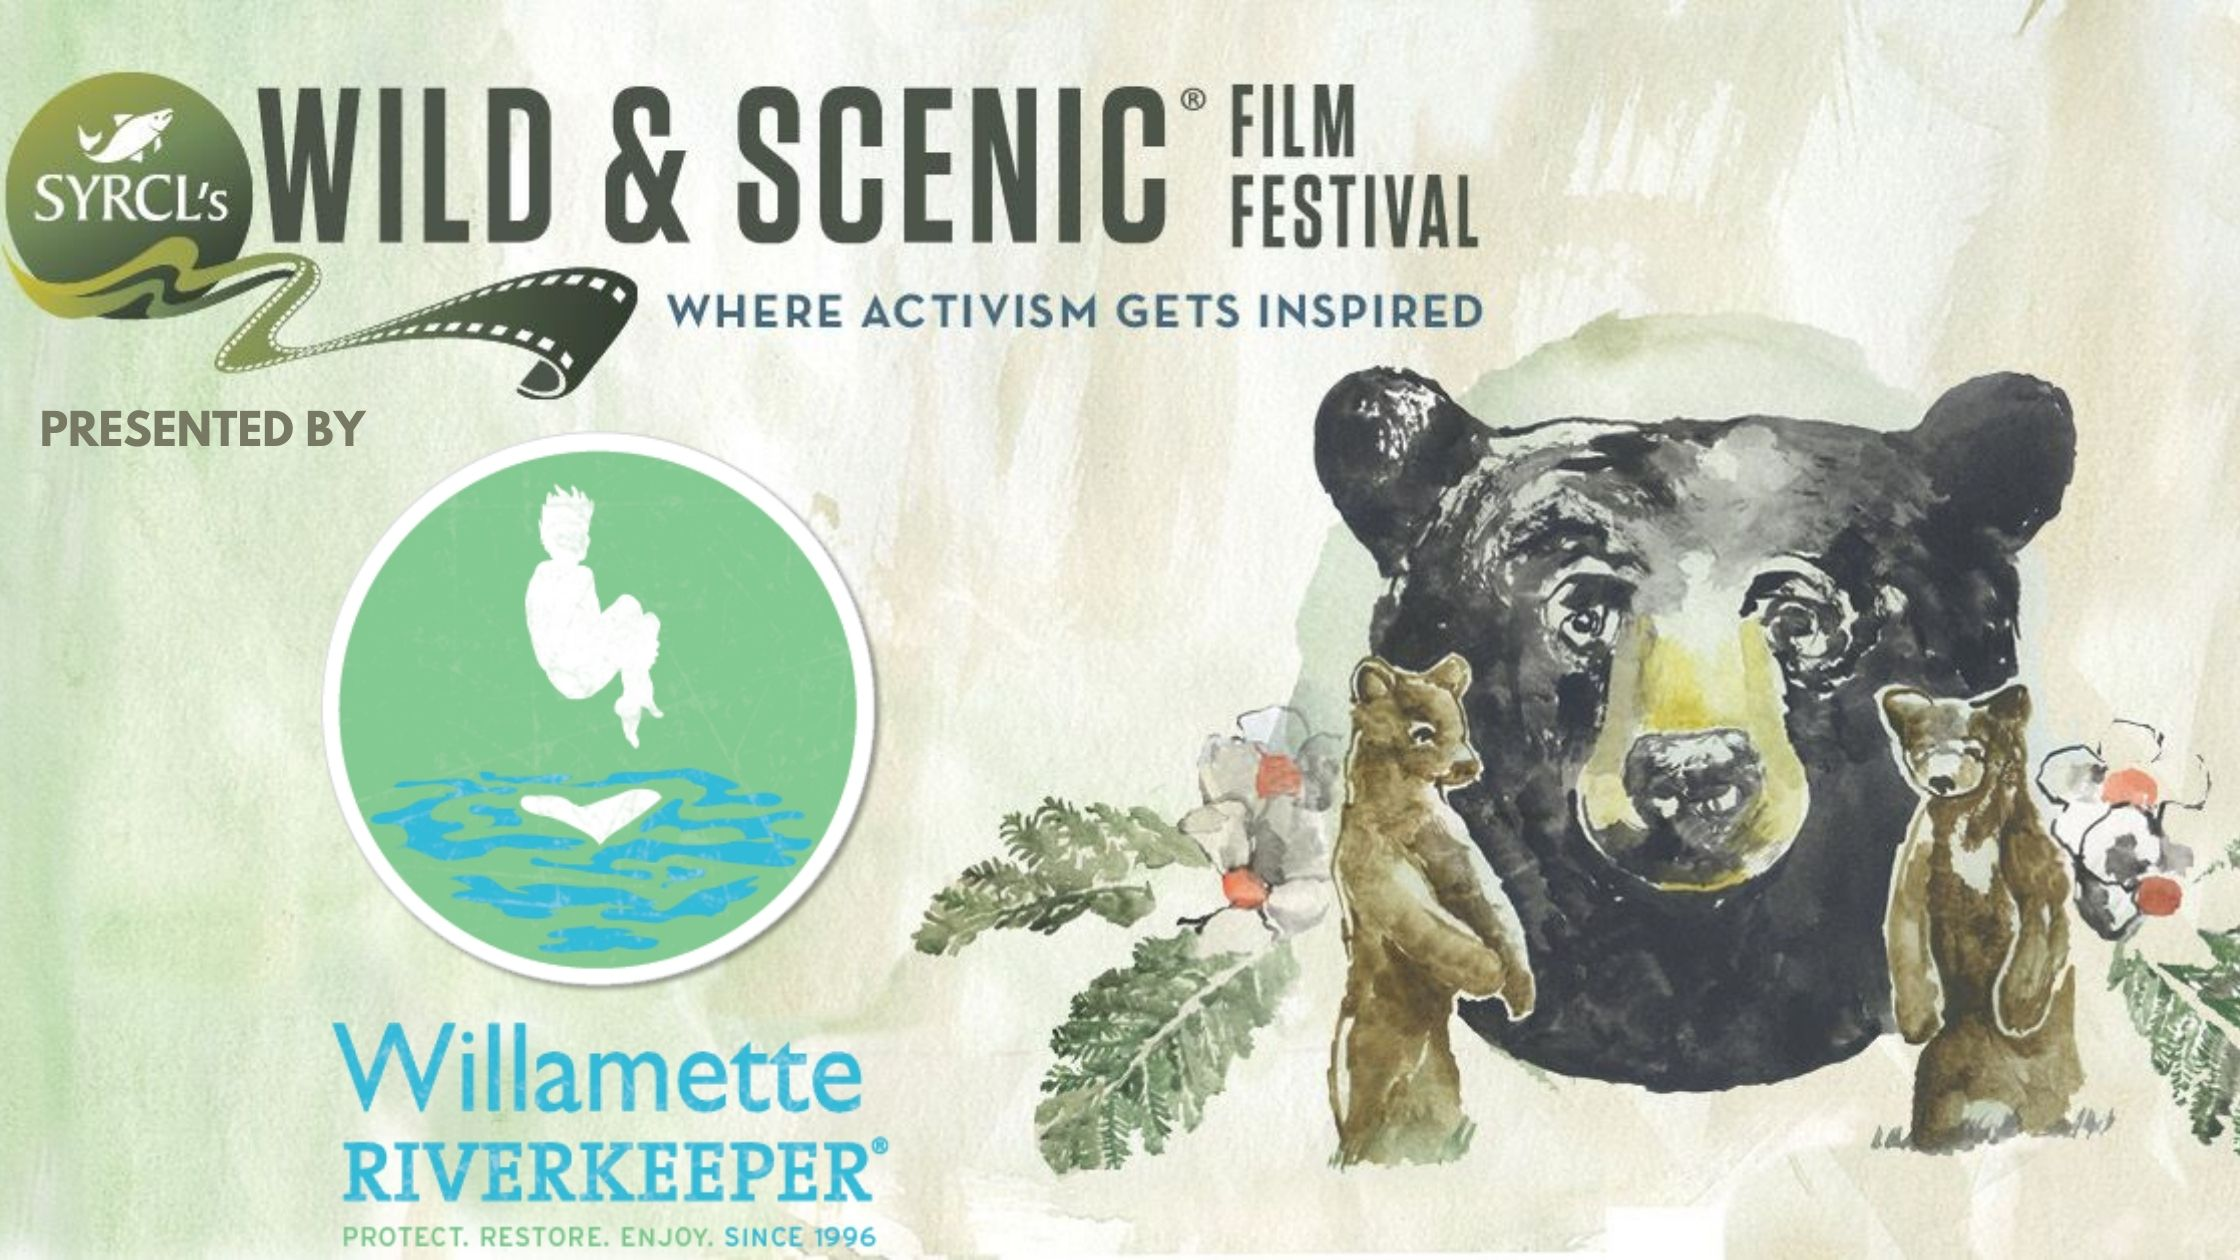 Willamette Riverkeeper Presents SYRCL's Wild & Scenic Film Festival